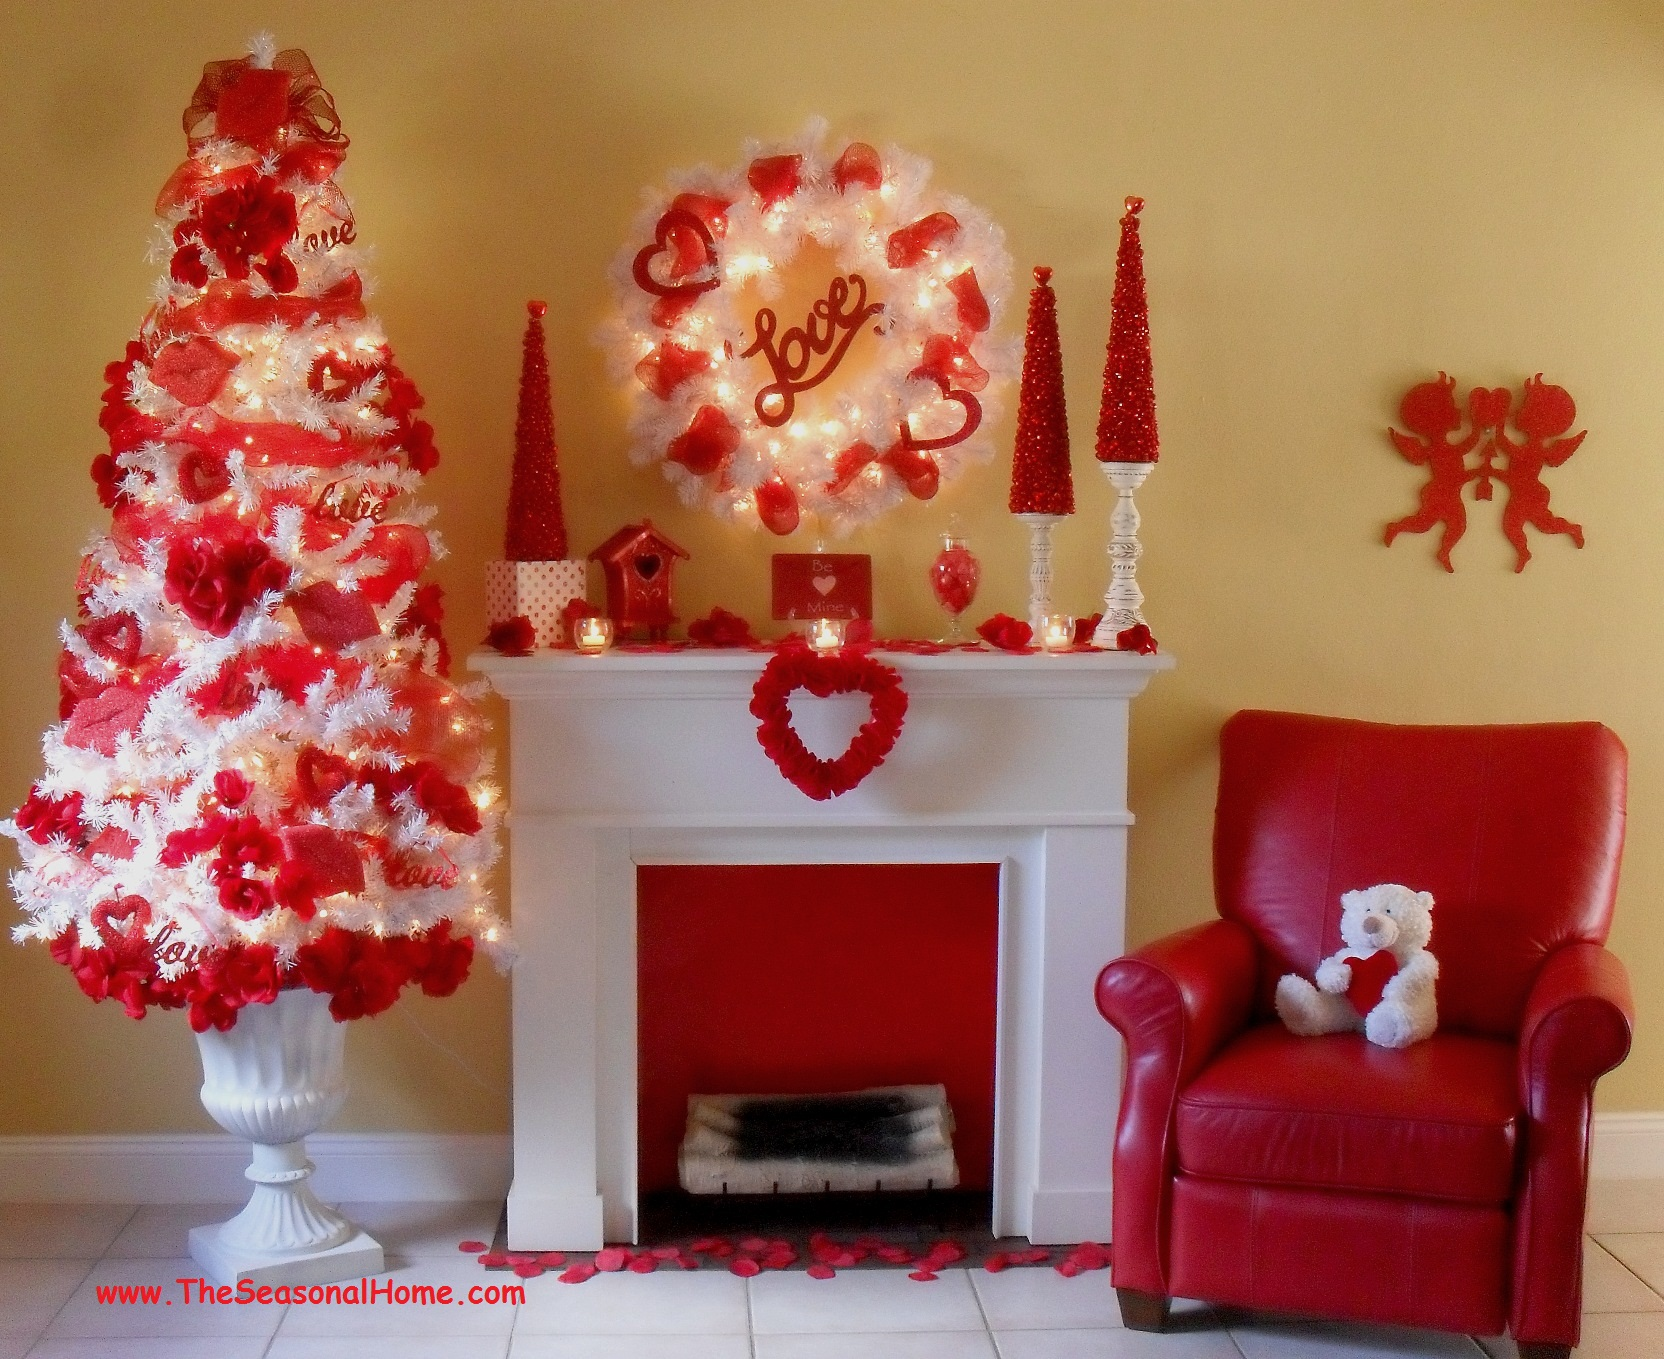 Cute valentines day home decorating idea dmards for Valentine day at home